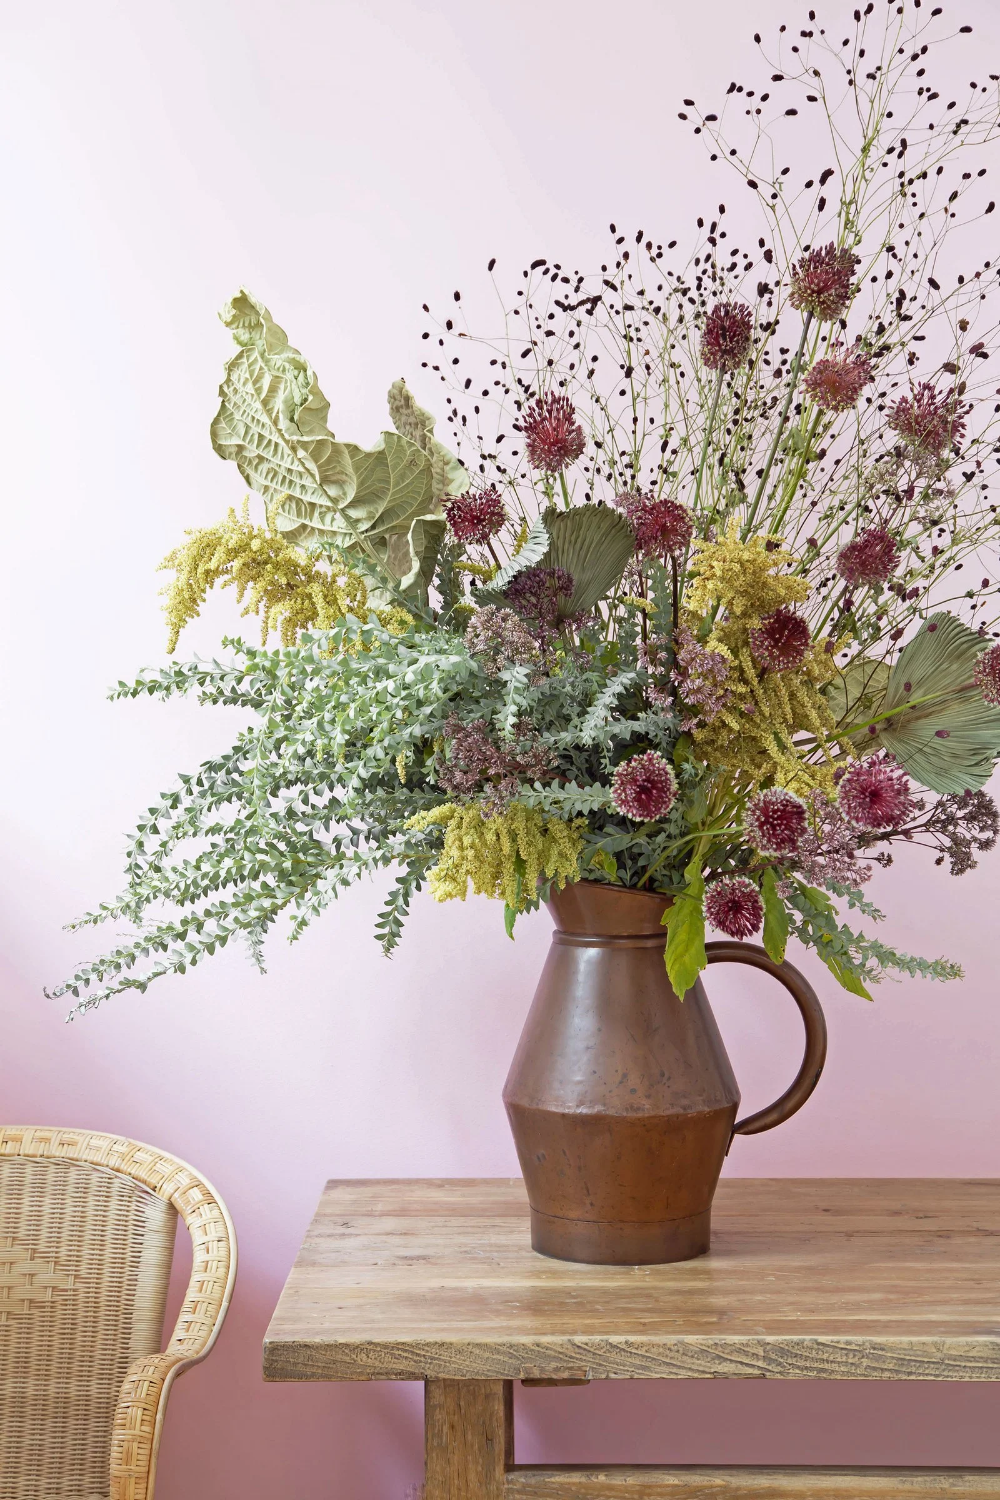 7 Dried Flower Arrangements to Inspire Your Fall Decorating#arrangements #decora...#arrangements #decora #decoratingarrangements #dried #fall #flower #inspire